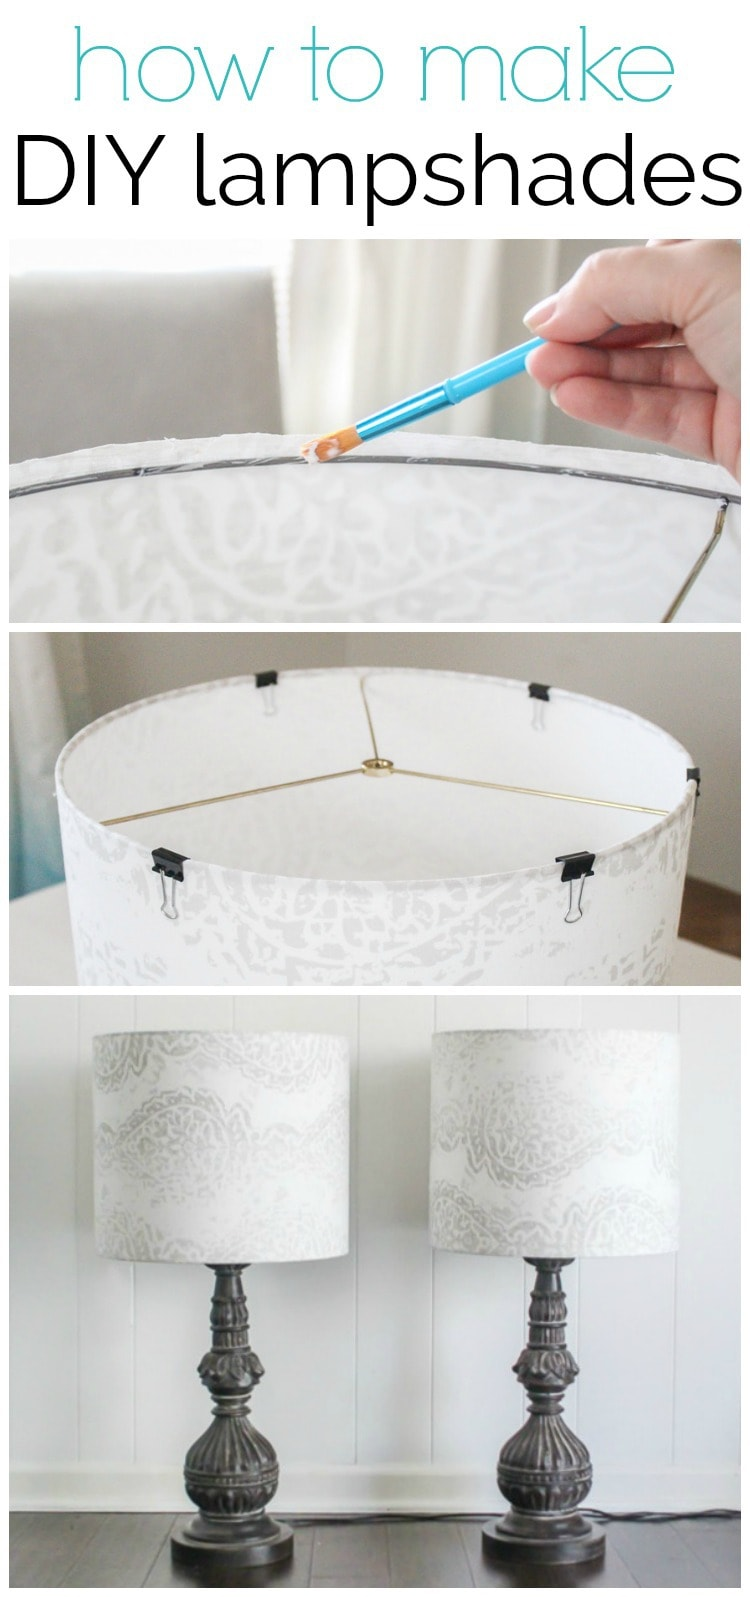 How to make a lampshade - making custom diy lampshades is a quick and easy project.